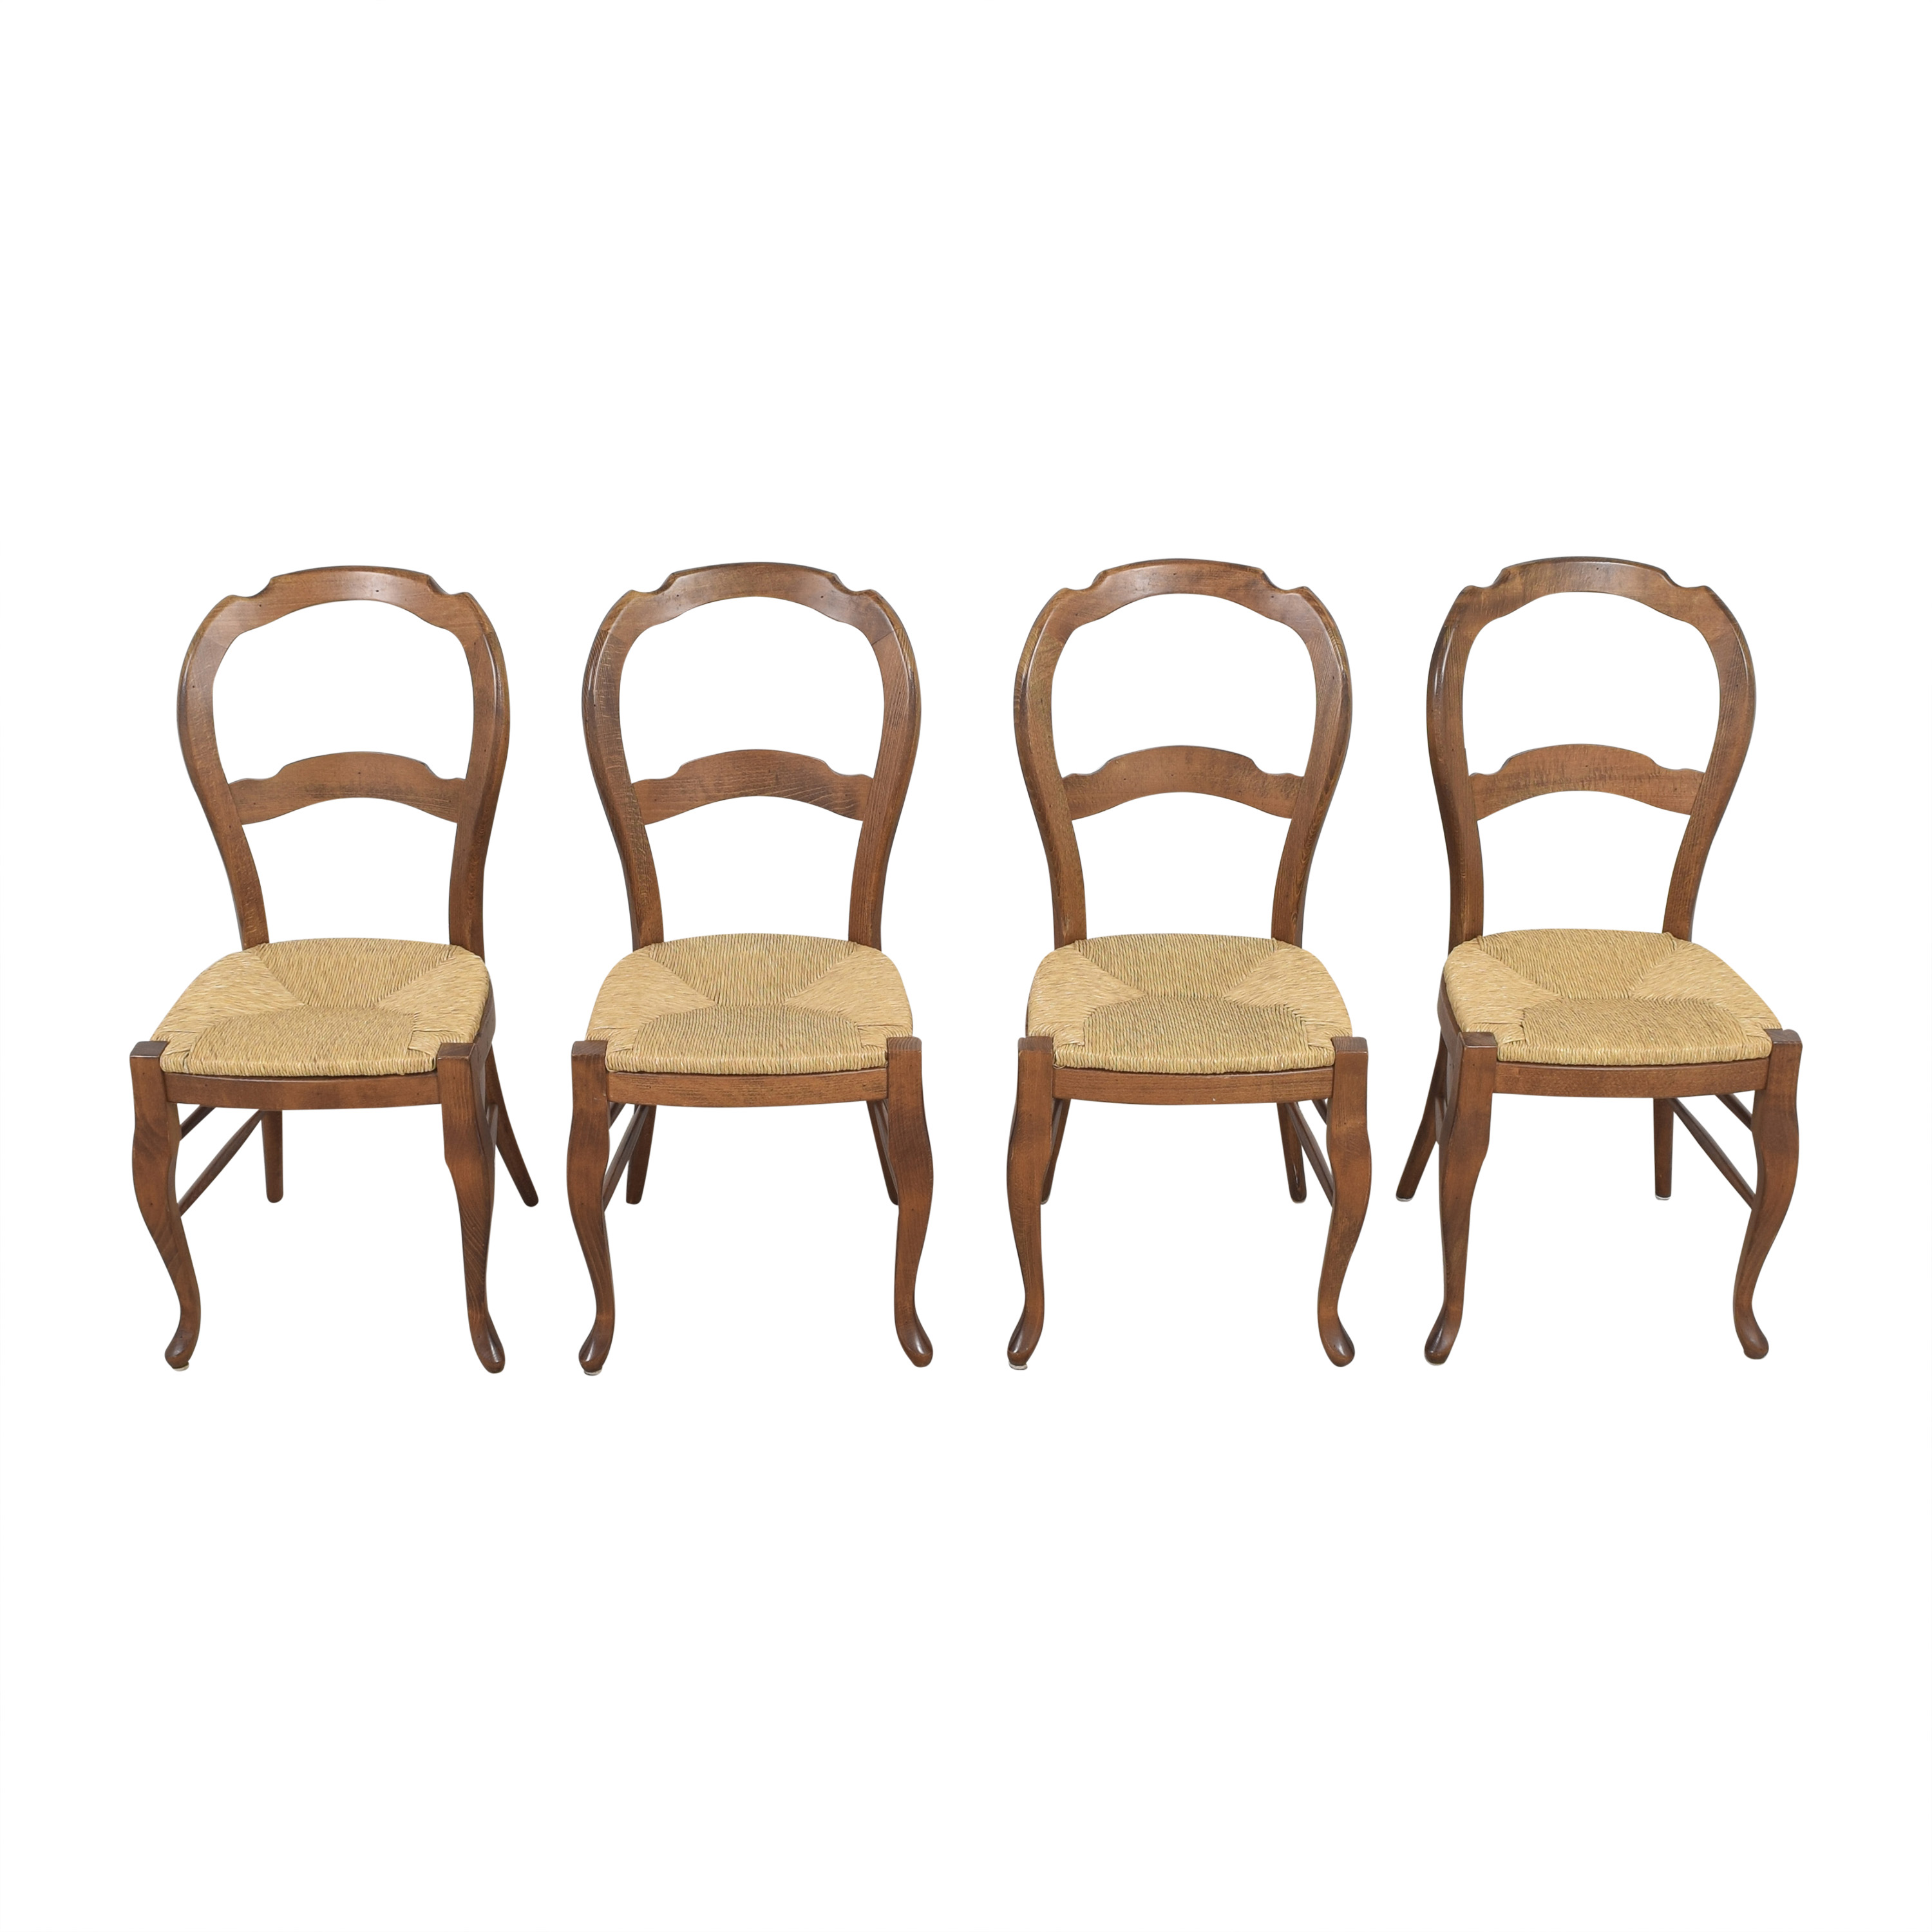 Pottery Barn Pottery Barn Woven Seat Dining Chairs